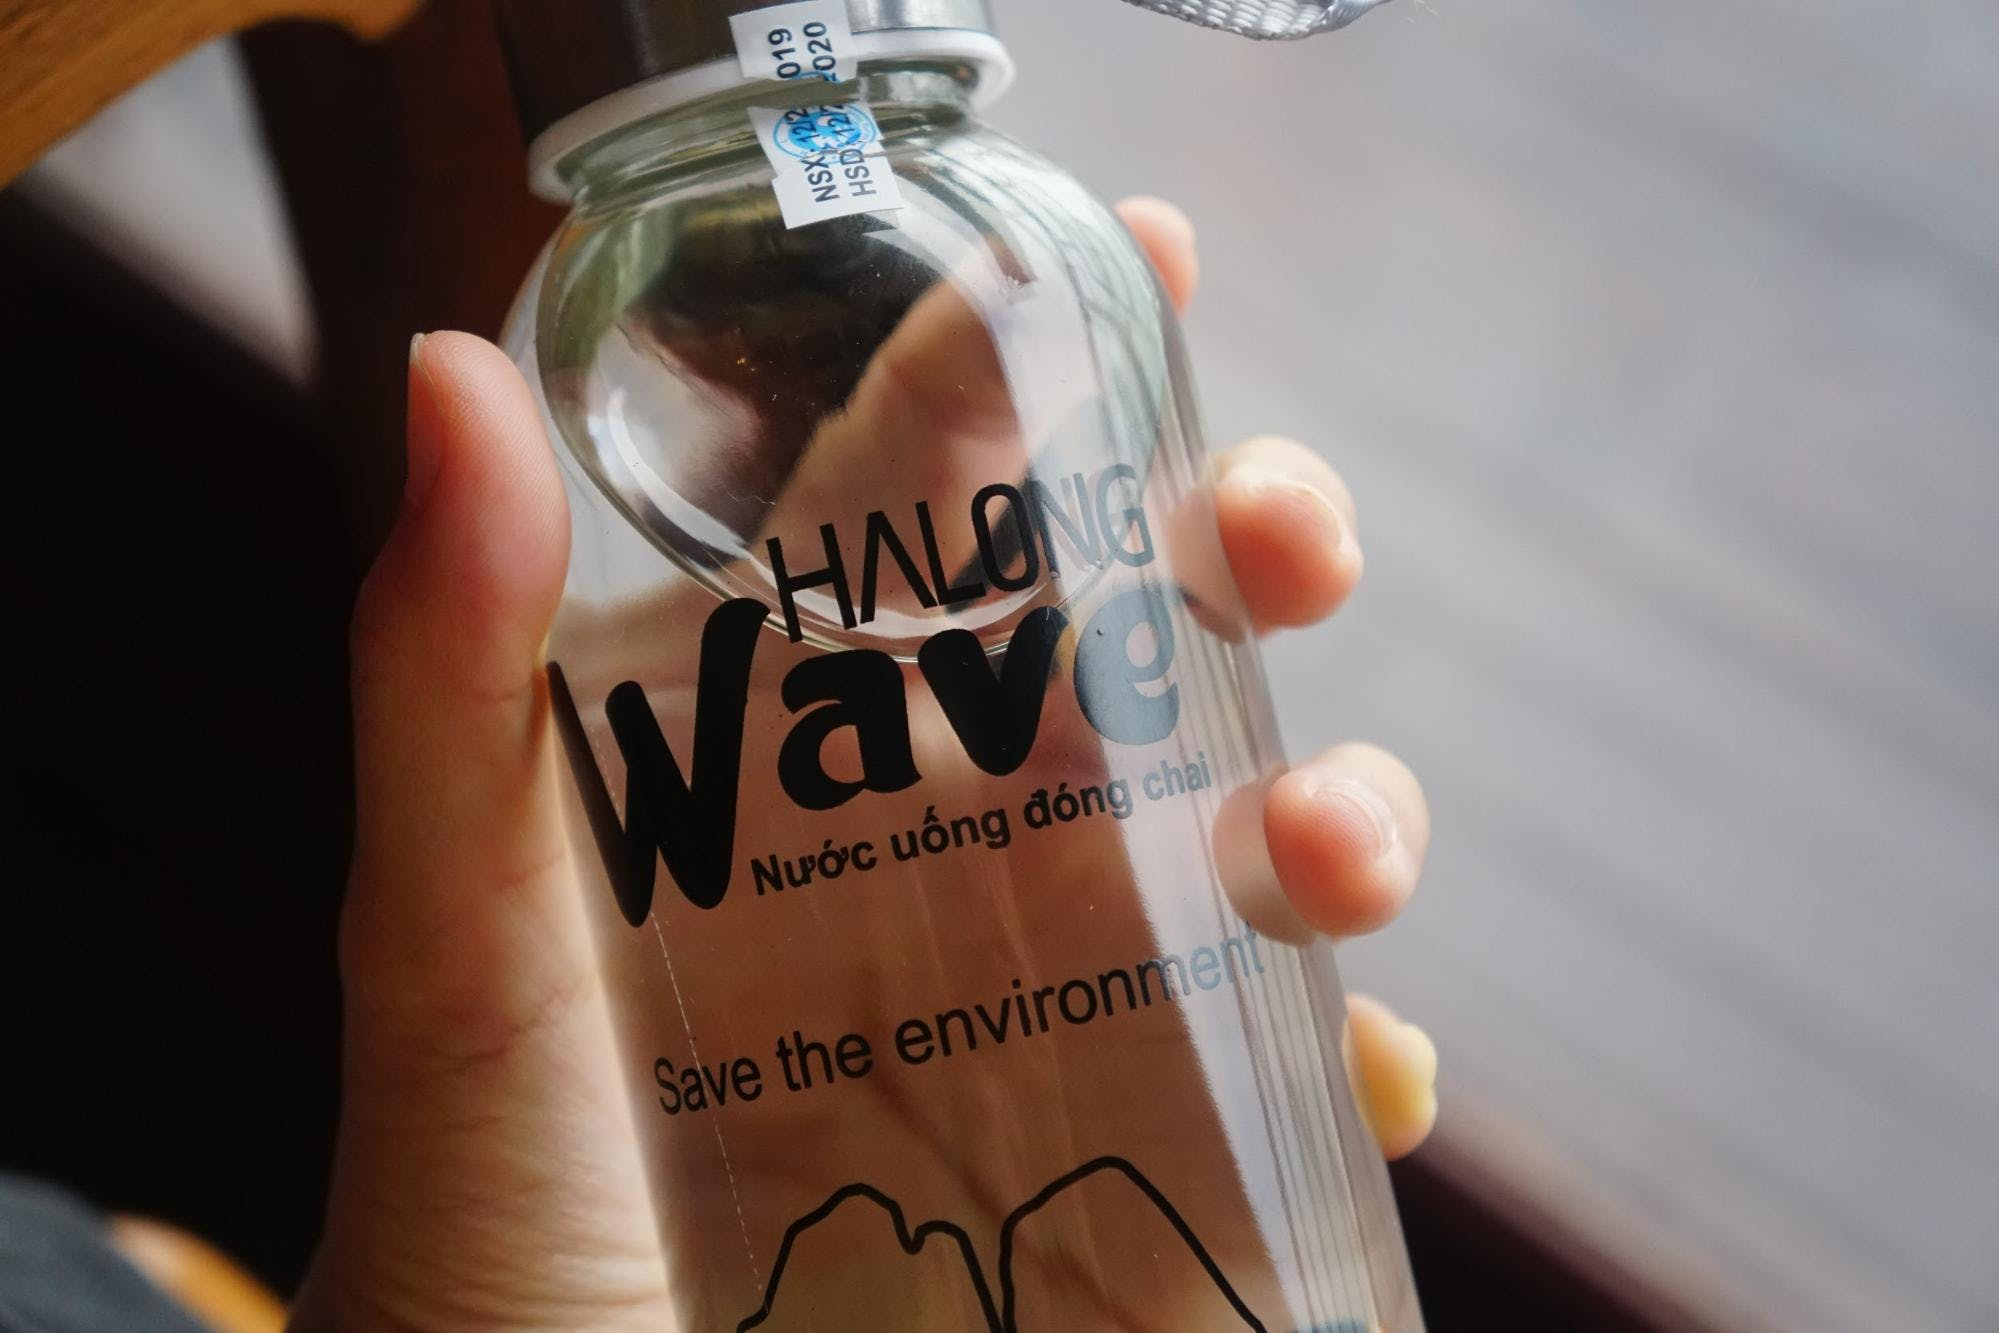 Halong Bay has banned single use plastics so all the boats have glass bottles for water